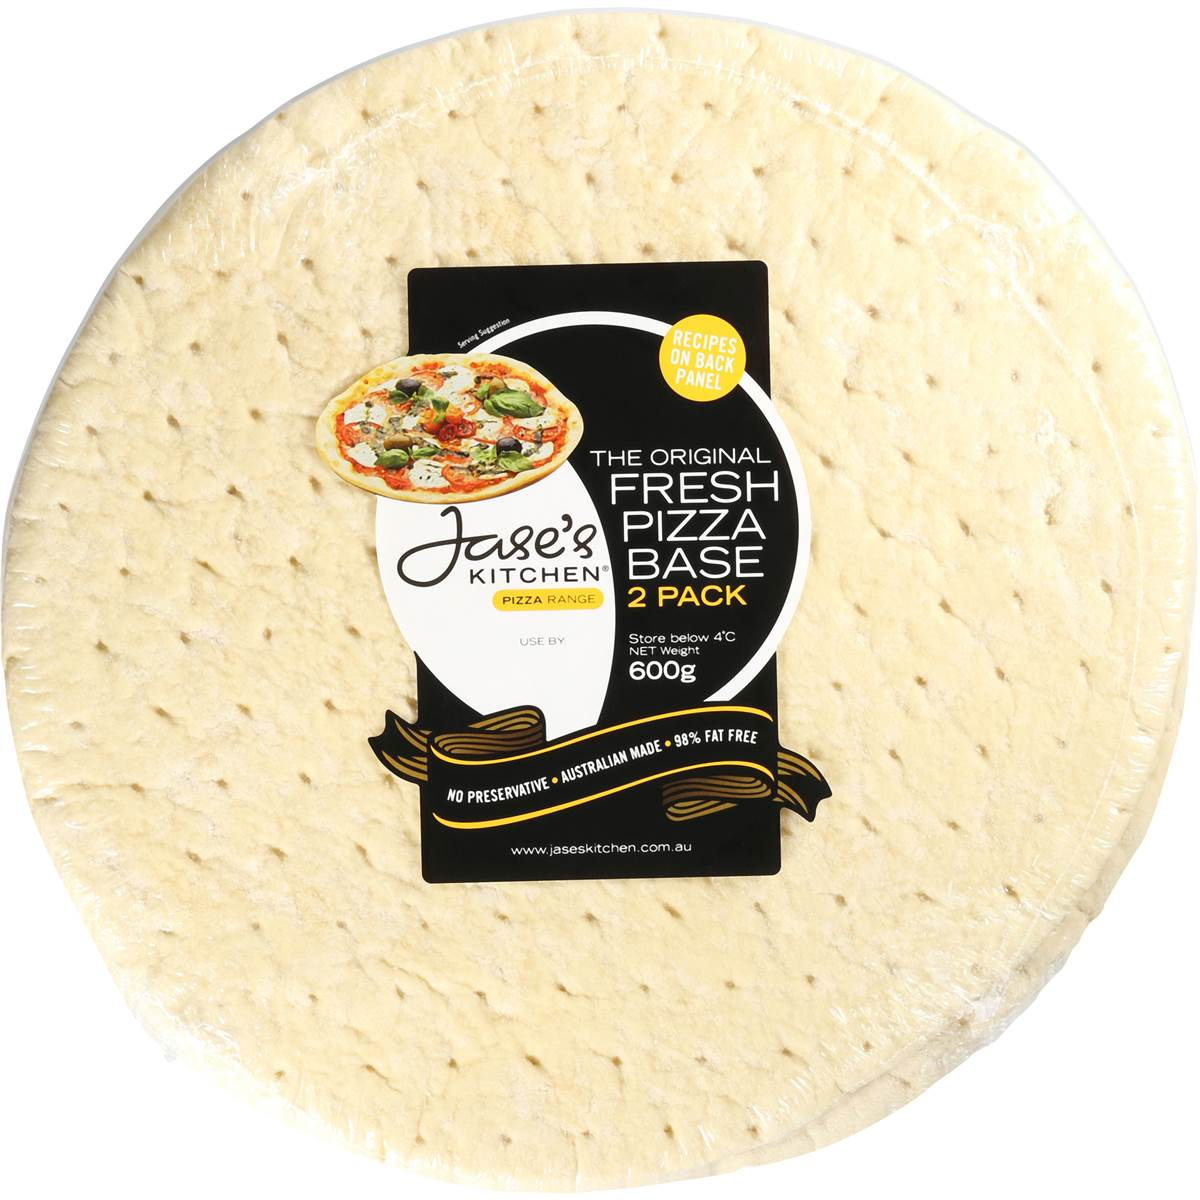 Picasso Kitchen Pizza Base Review